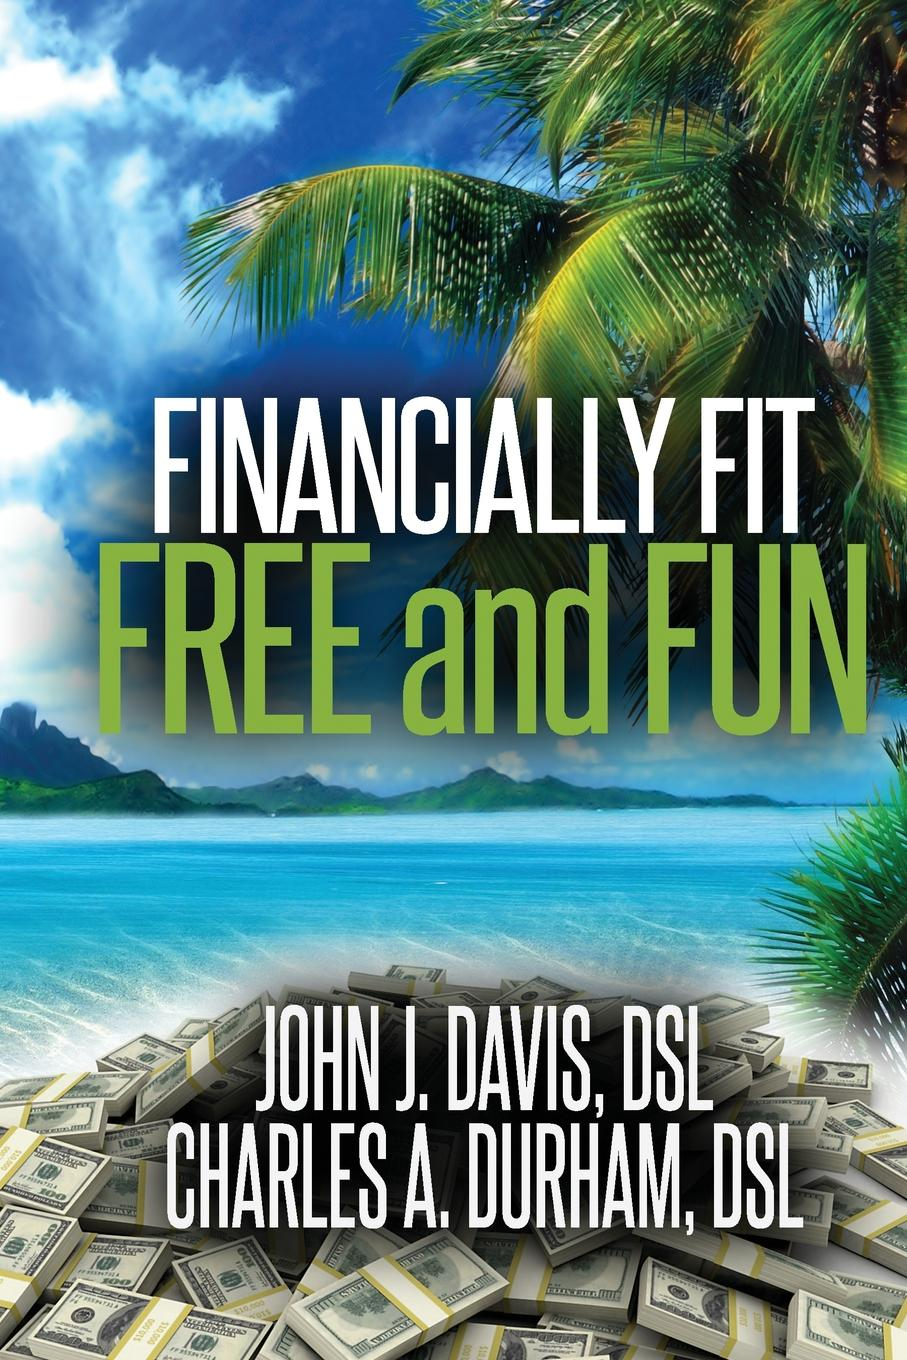 Financially Fit Free and Fun Financially Fit Free and Fun is unlike any personal finance book...